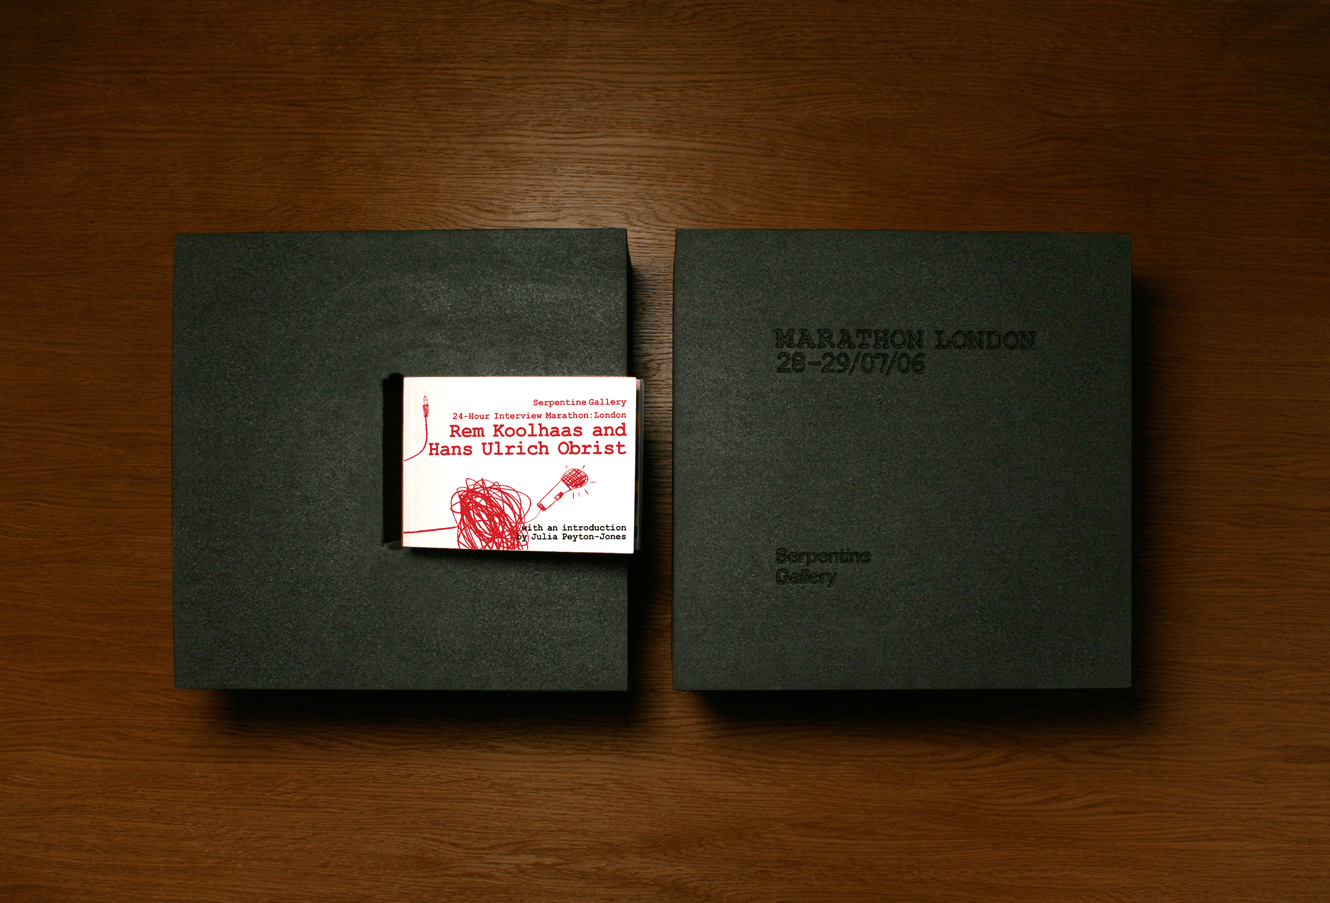 Interview Marathon Book And Cover Design For The Serpentine Gallery Designed By &&& Creative